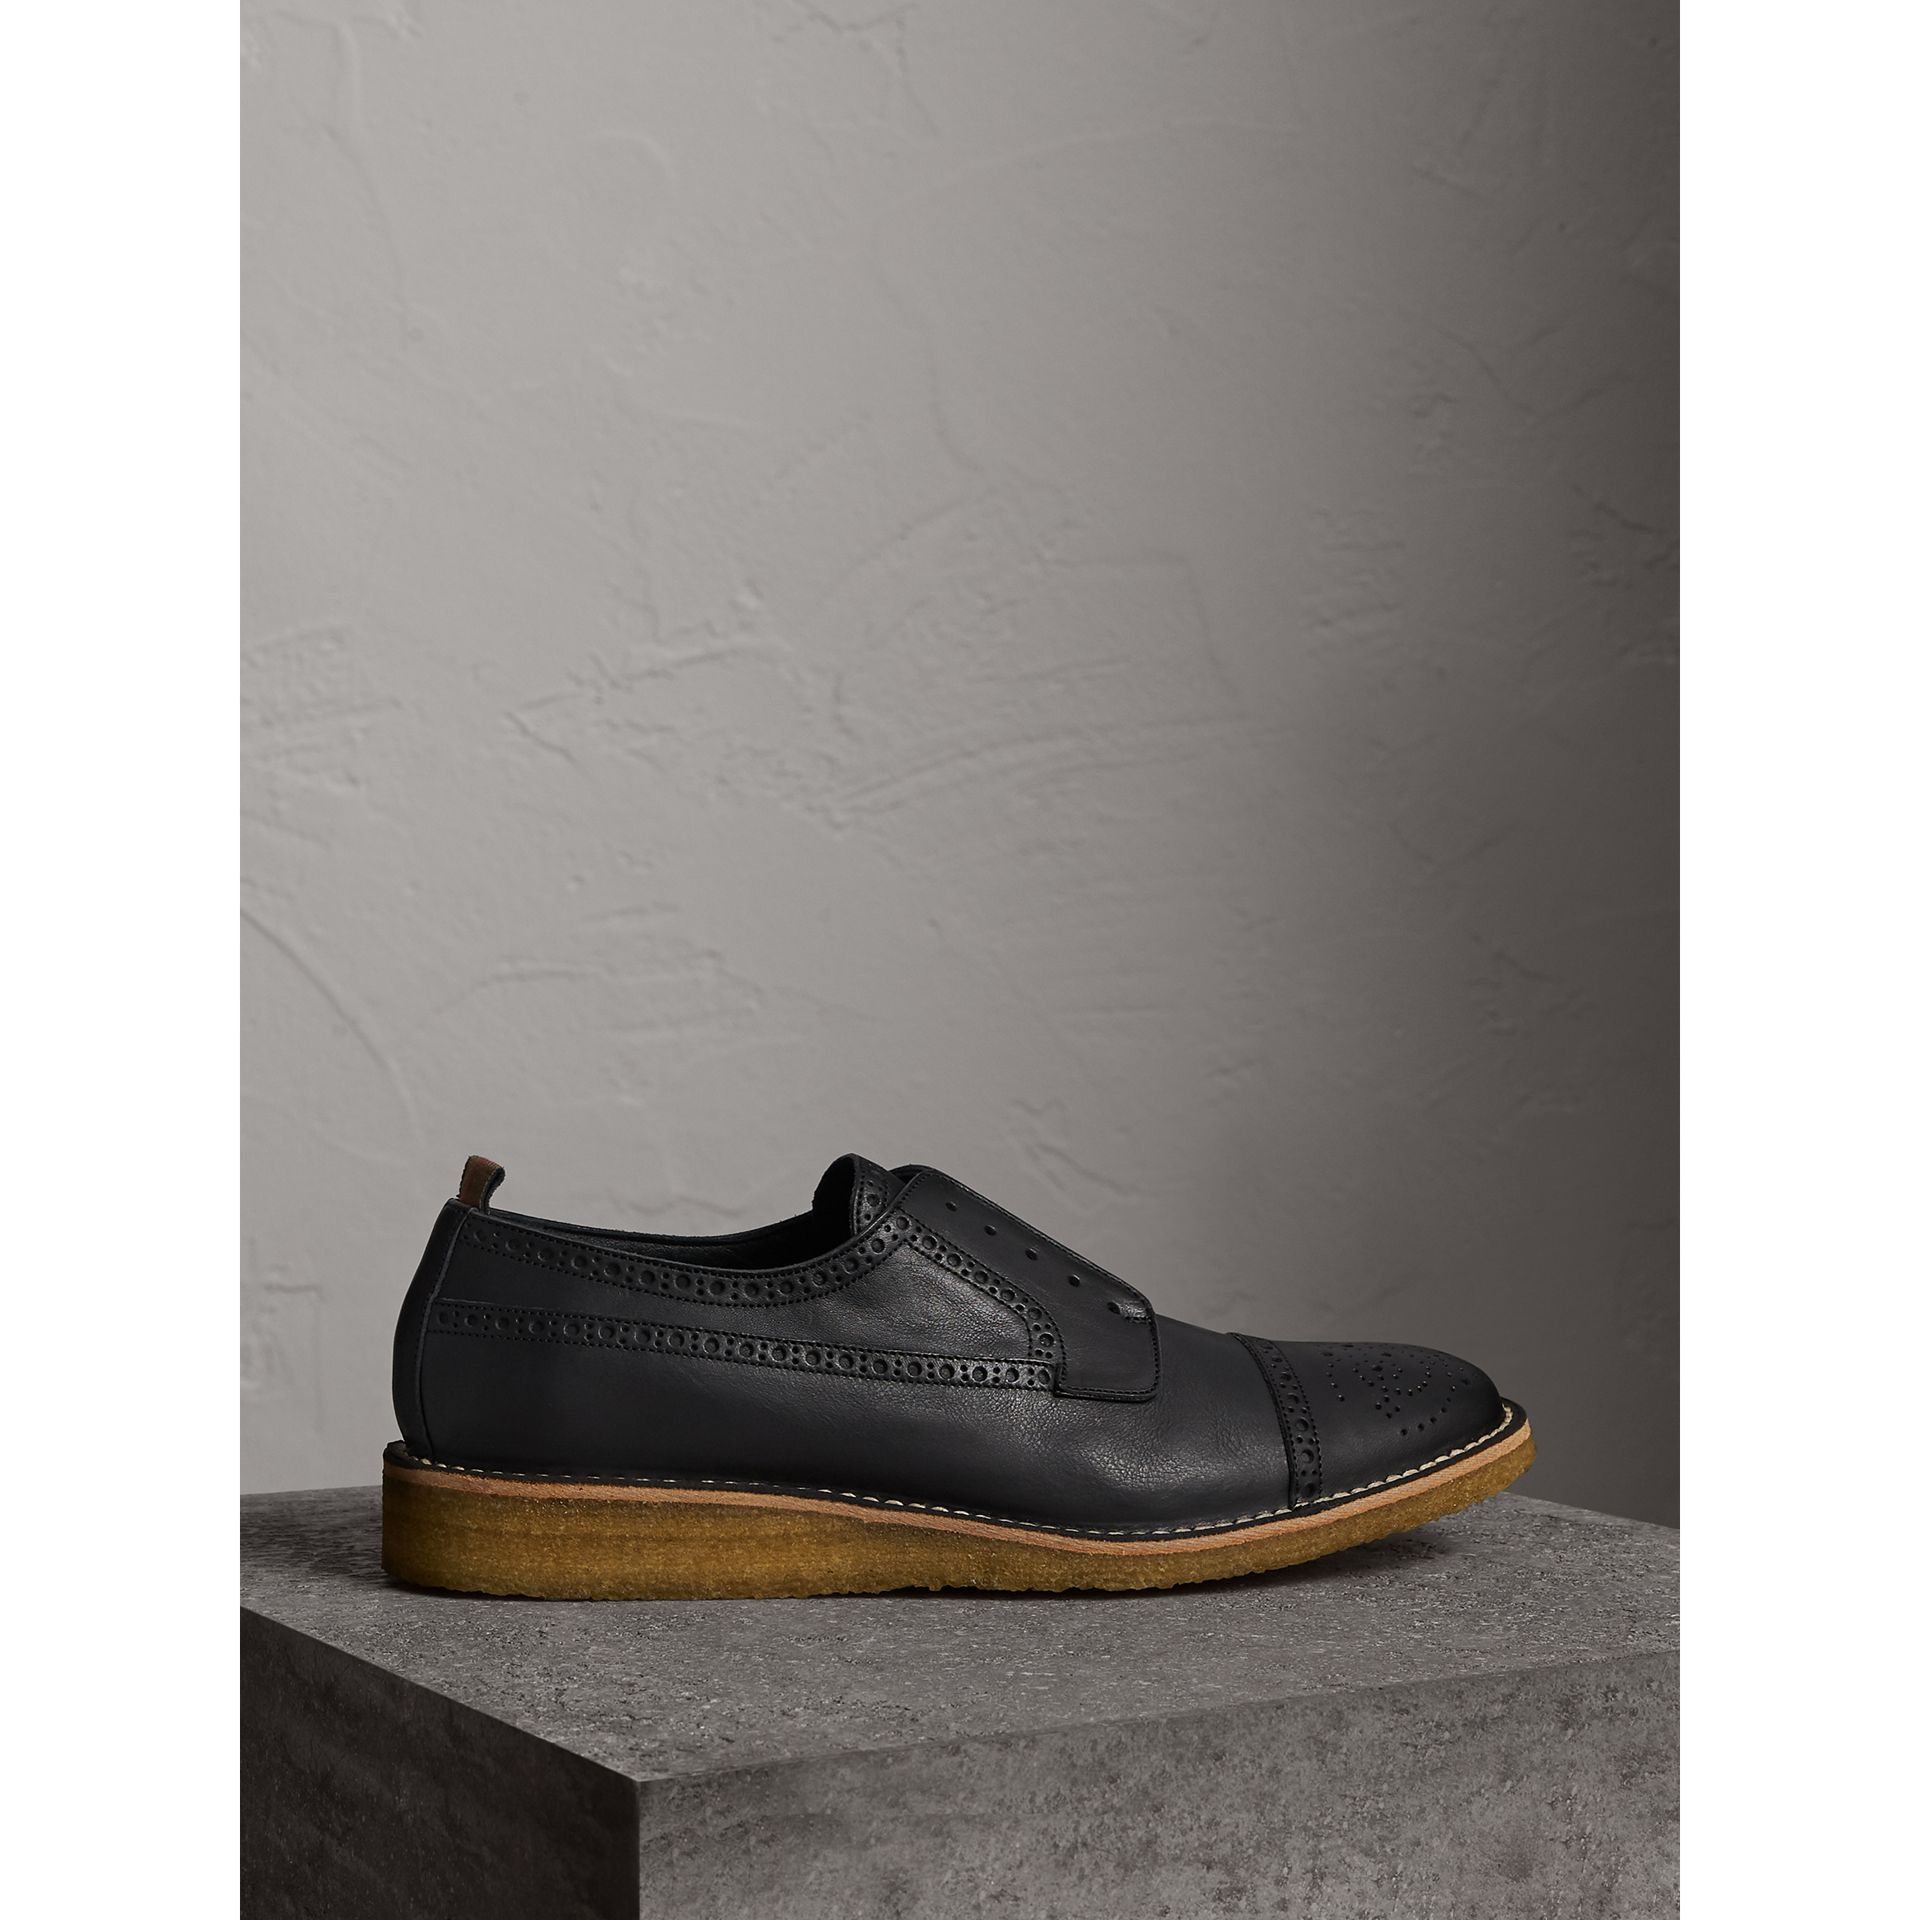 Raised Toe-cap Leather Brogues in Black - Men | Burberry - gallery image 5